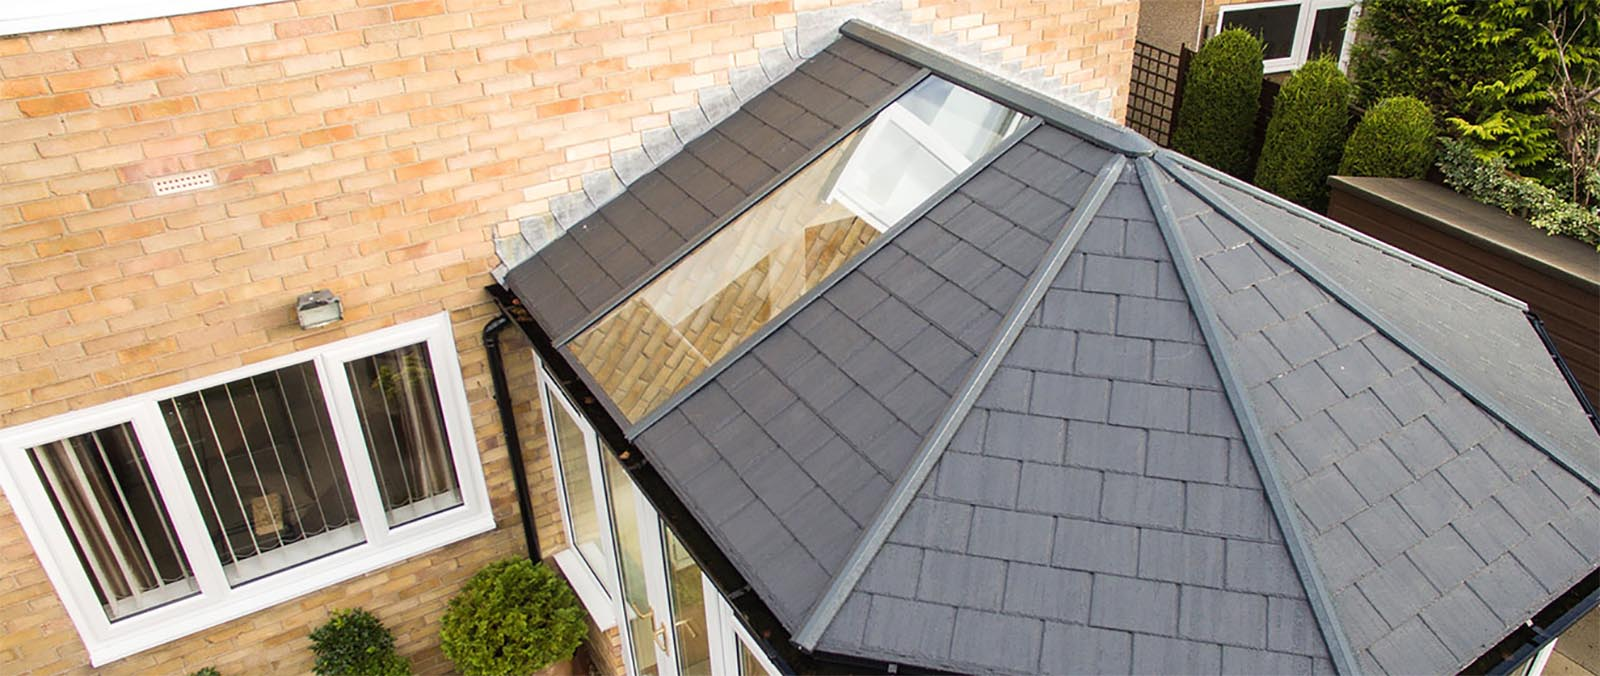 ultra 380 conservatory orangery roof york selby